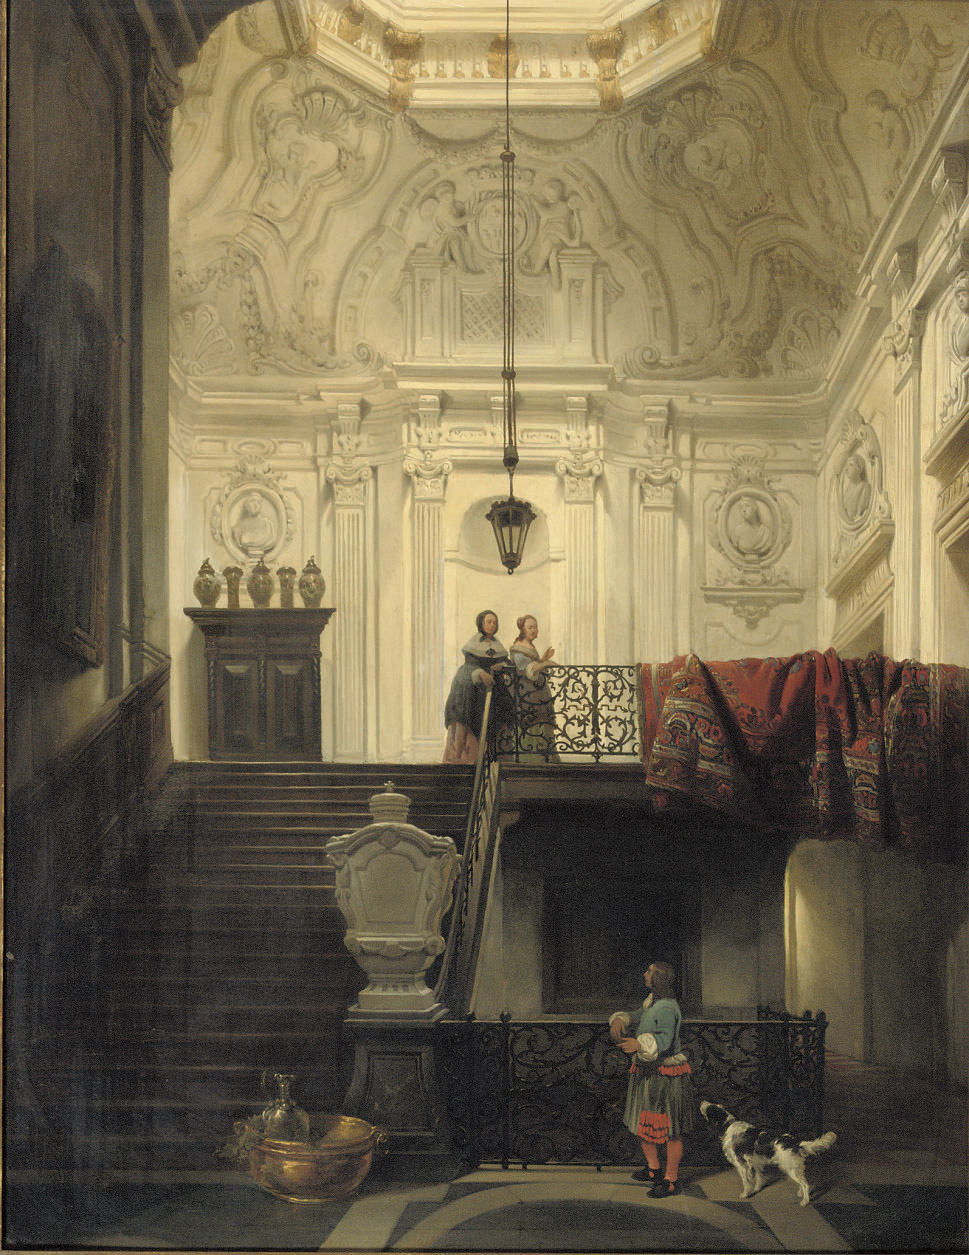 Elegant figures in interior of Huis Schuylenburch, The Hague